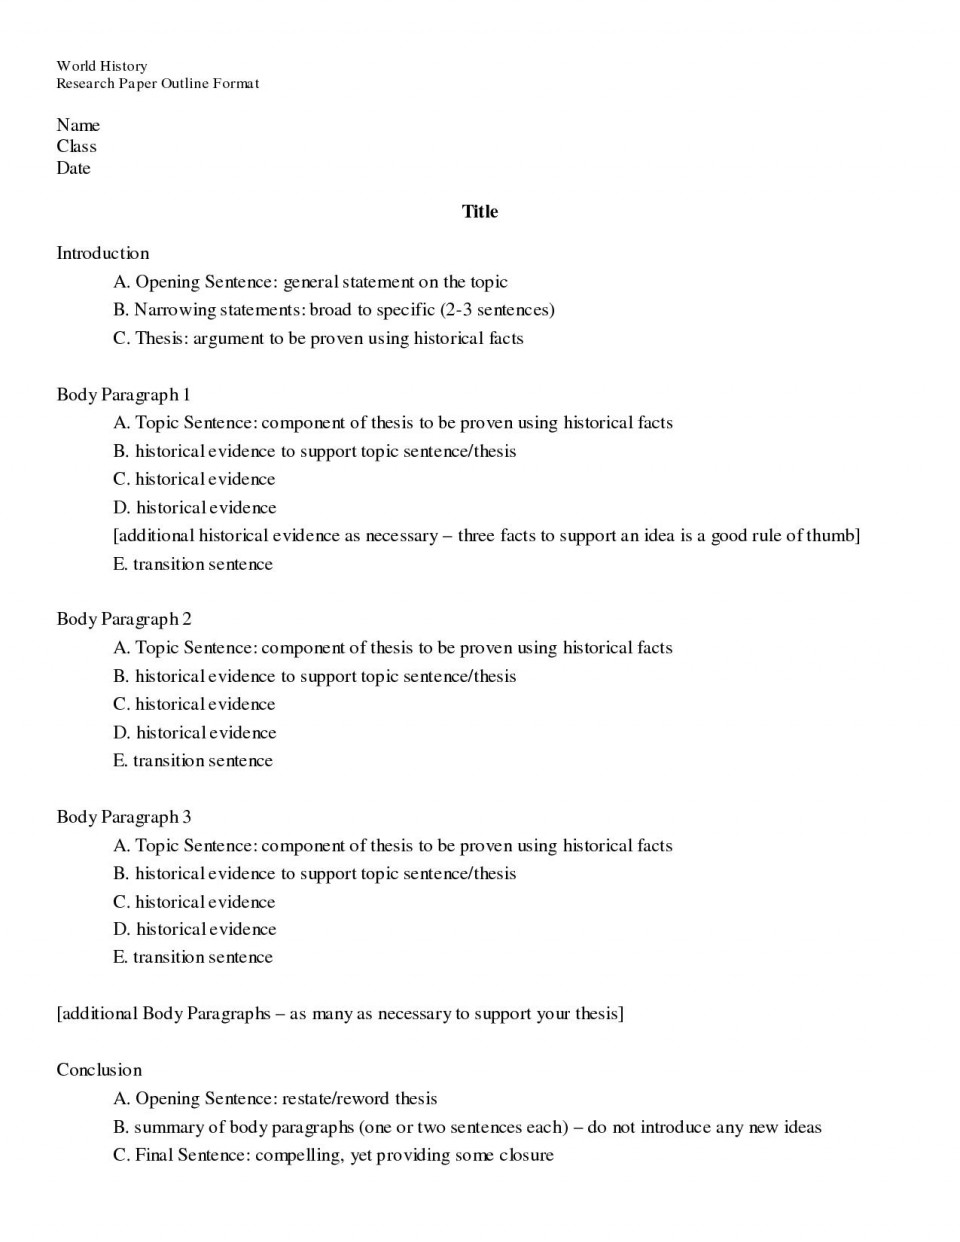 015 Biology Research Paper Sample Outline Remarkable Format Example 960